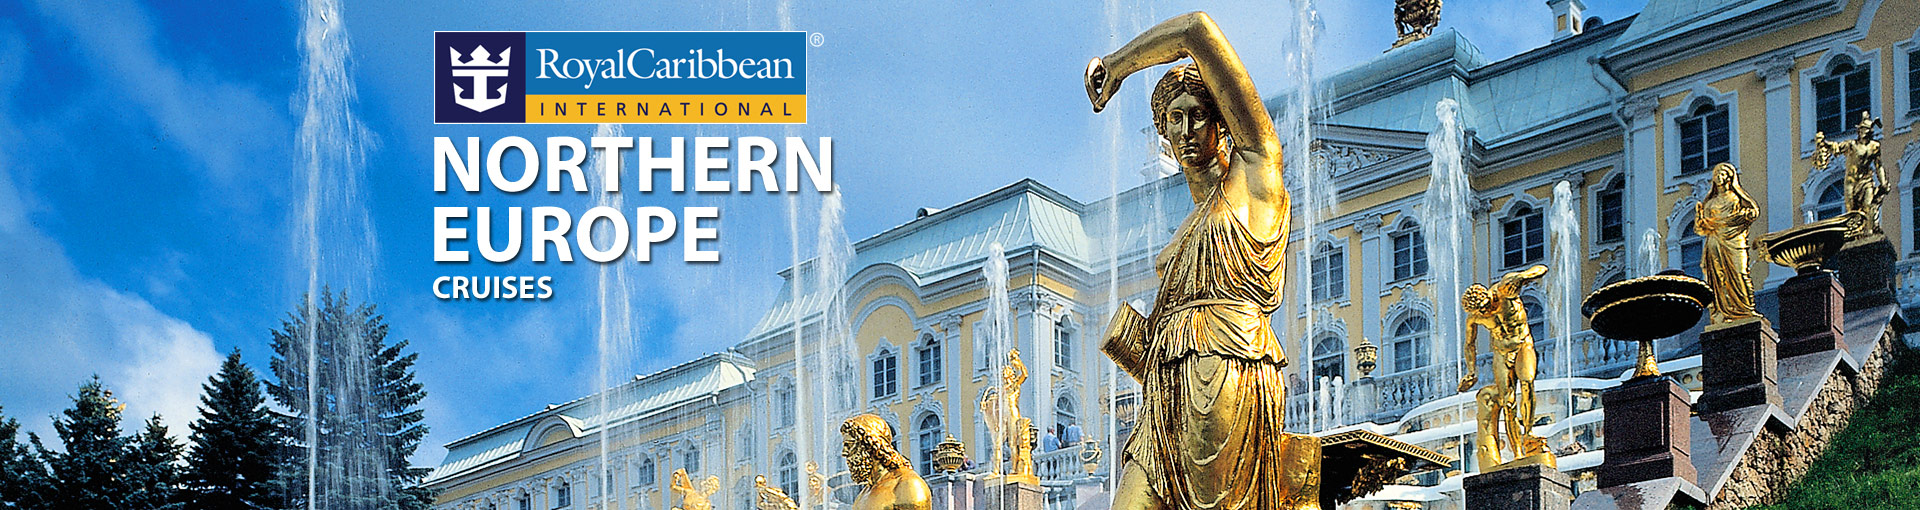 Royal Caribbean Northern Europe Cruises